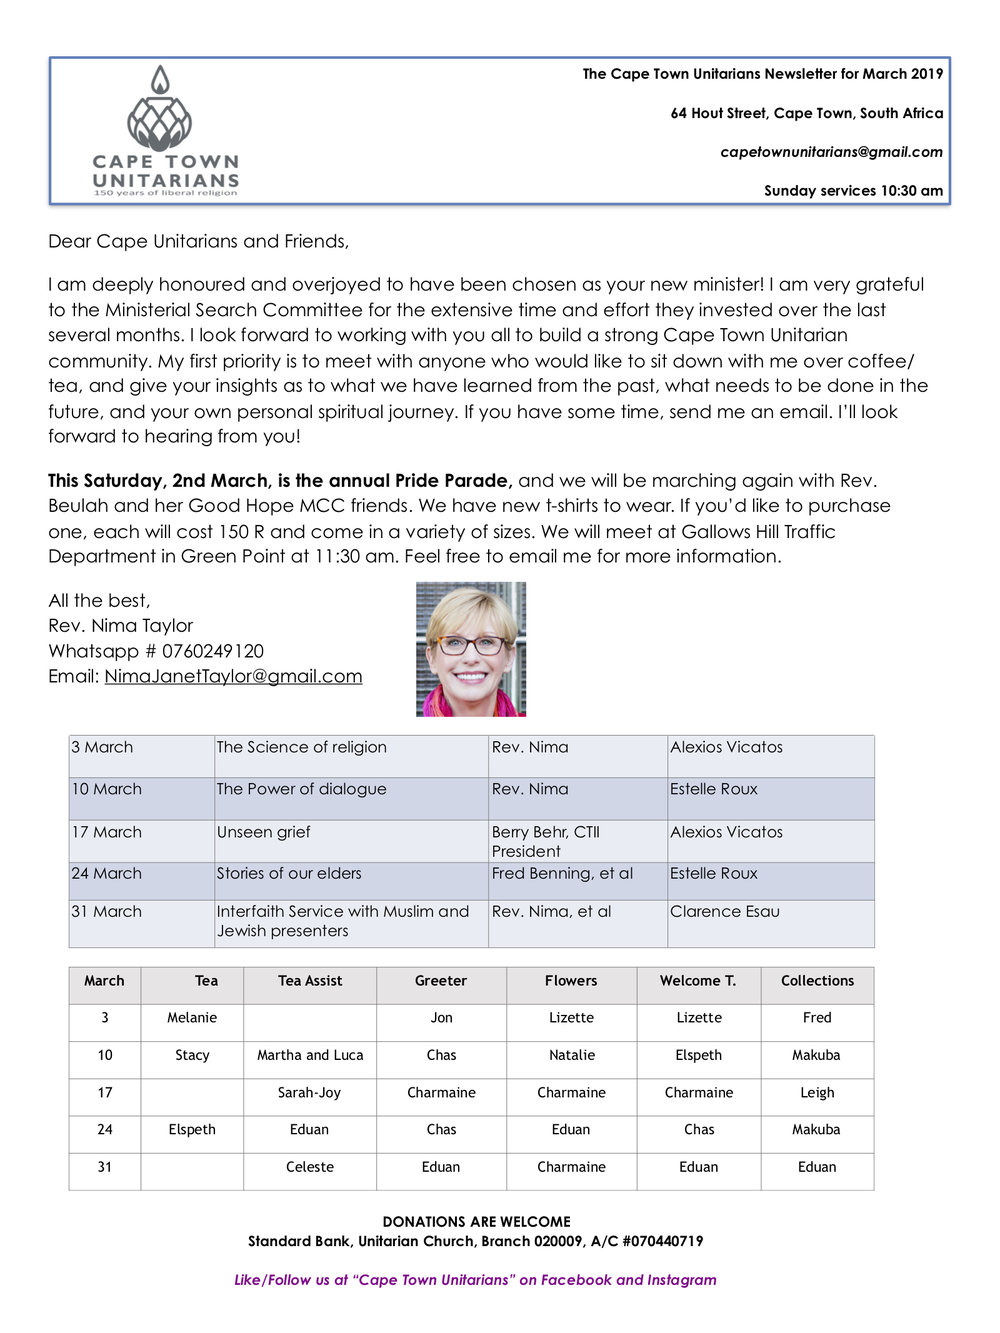 March 2019 newsletter page 1.jpg